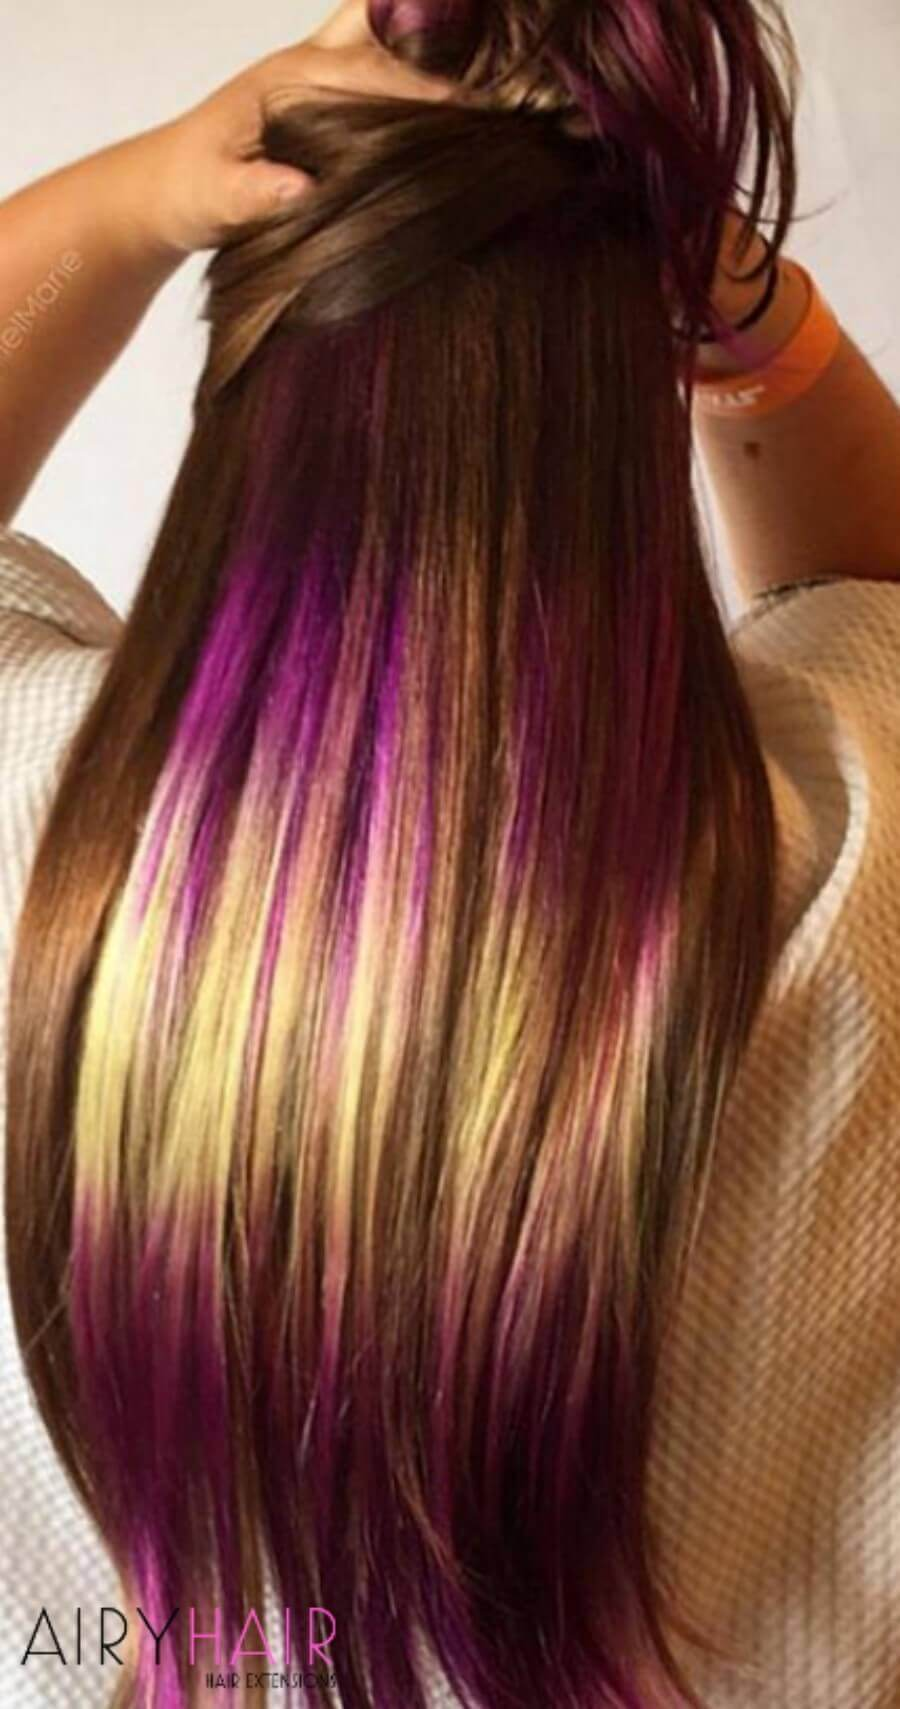 Natural Brown Hair with Yellow and Purple Shine Line